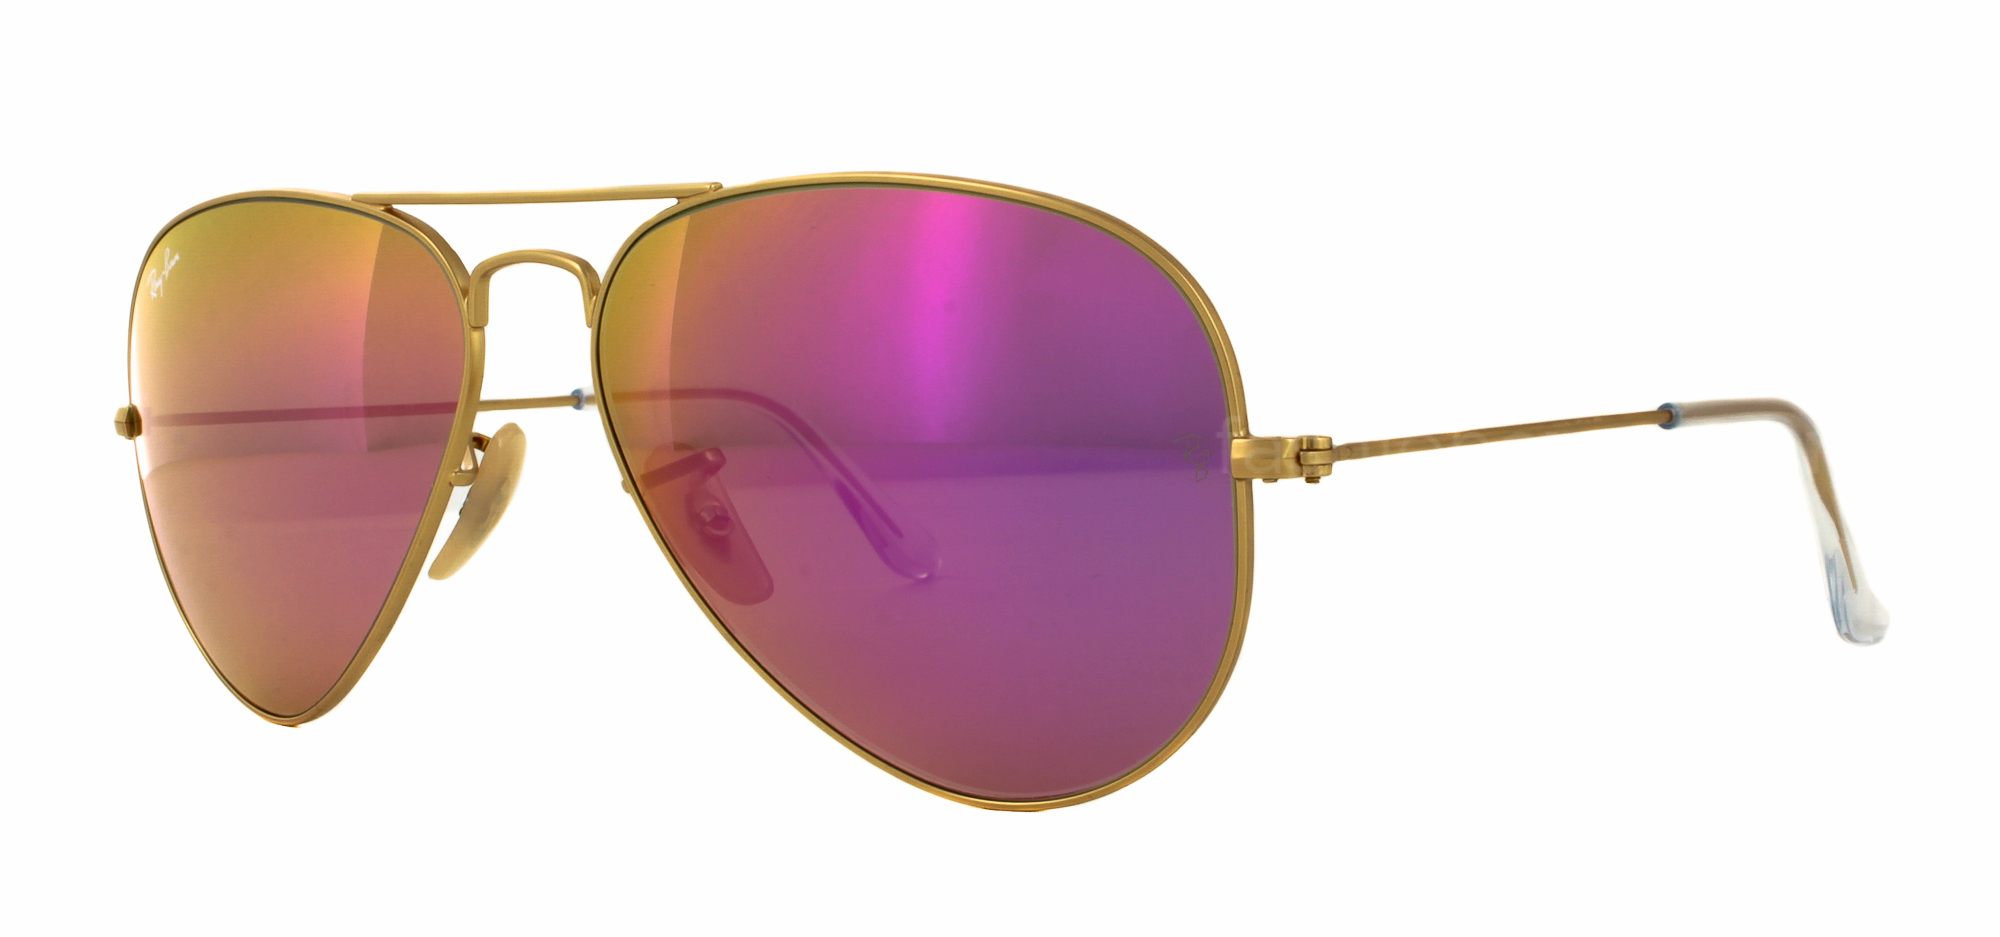 Ray ban 3213 for Decor my eyes